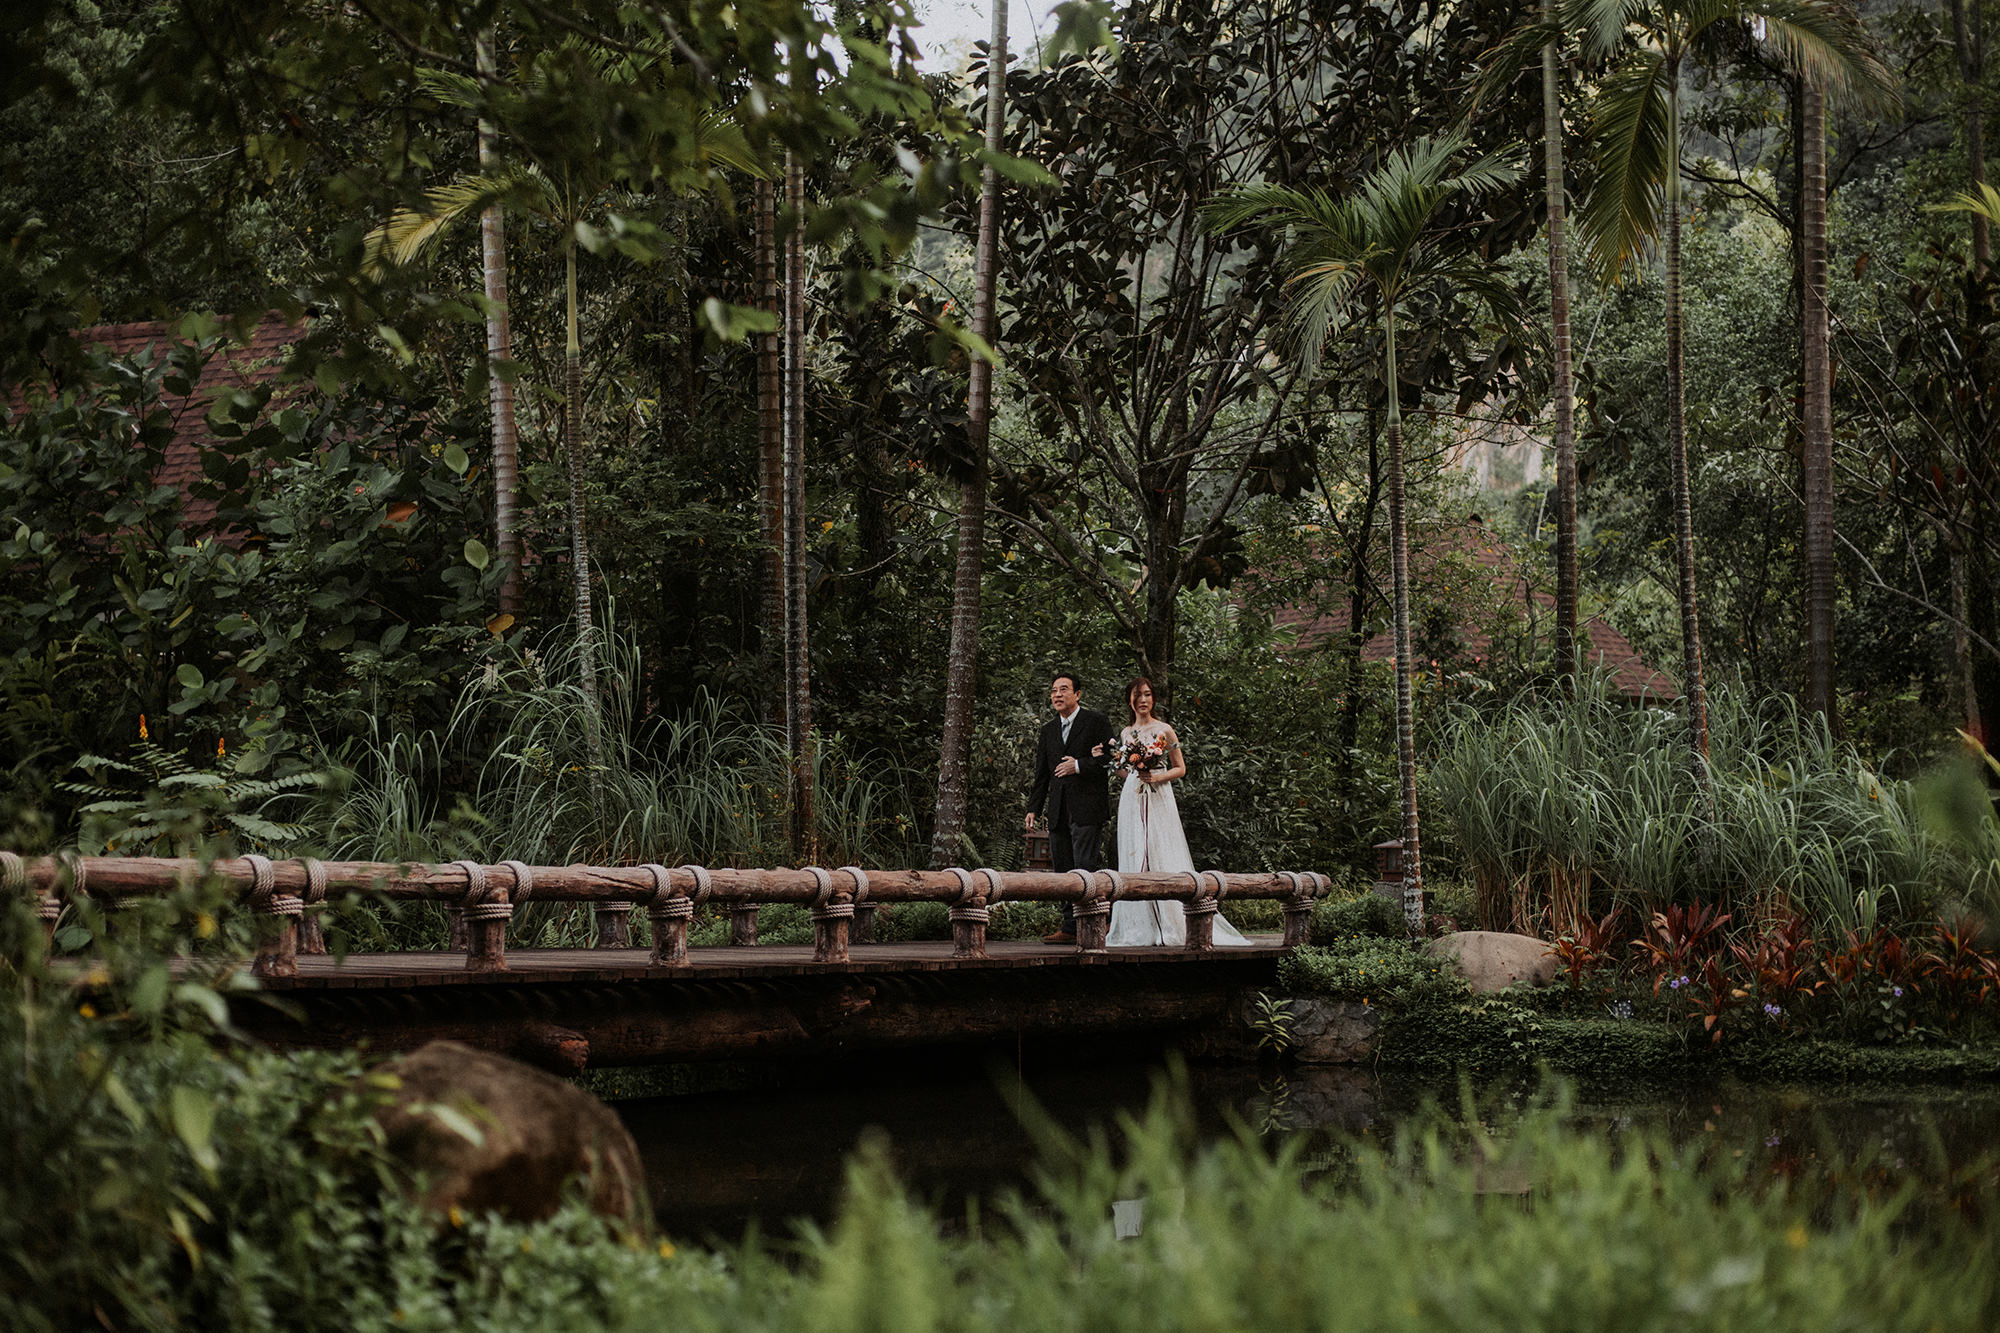 Bride and dad walking on bridge in Malaysian jungle.